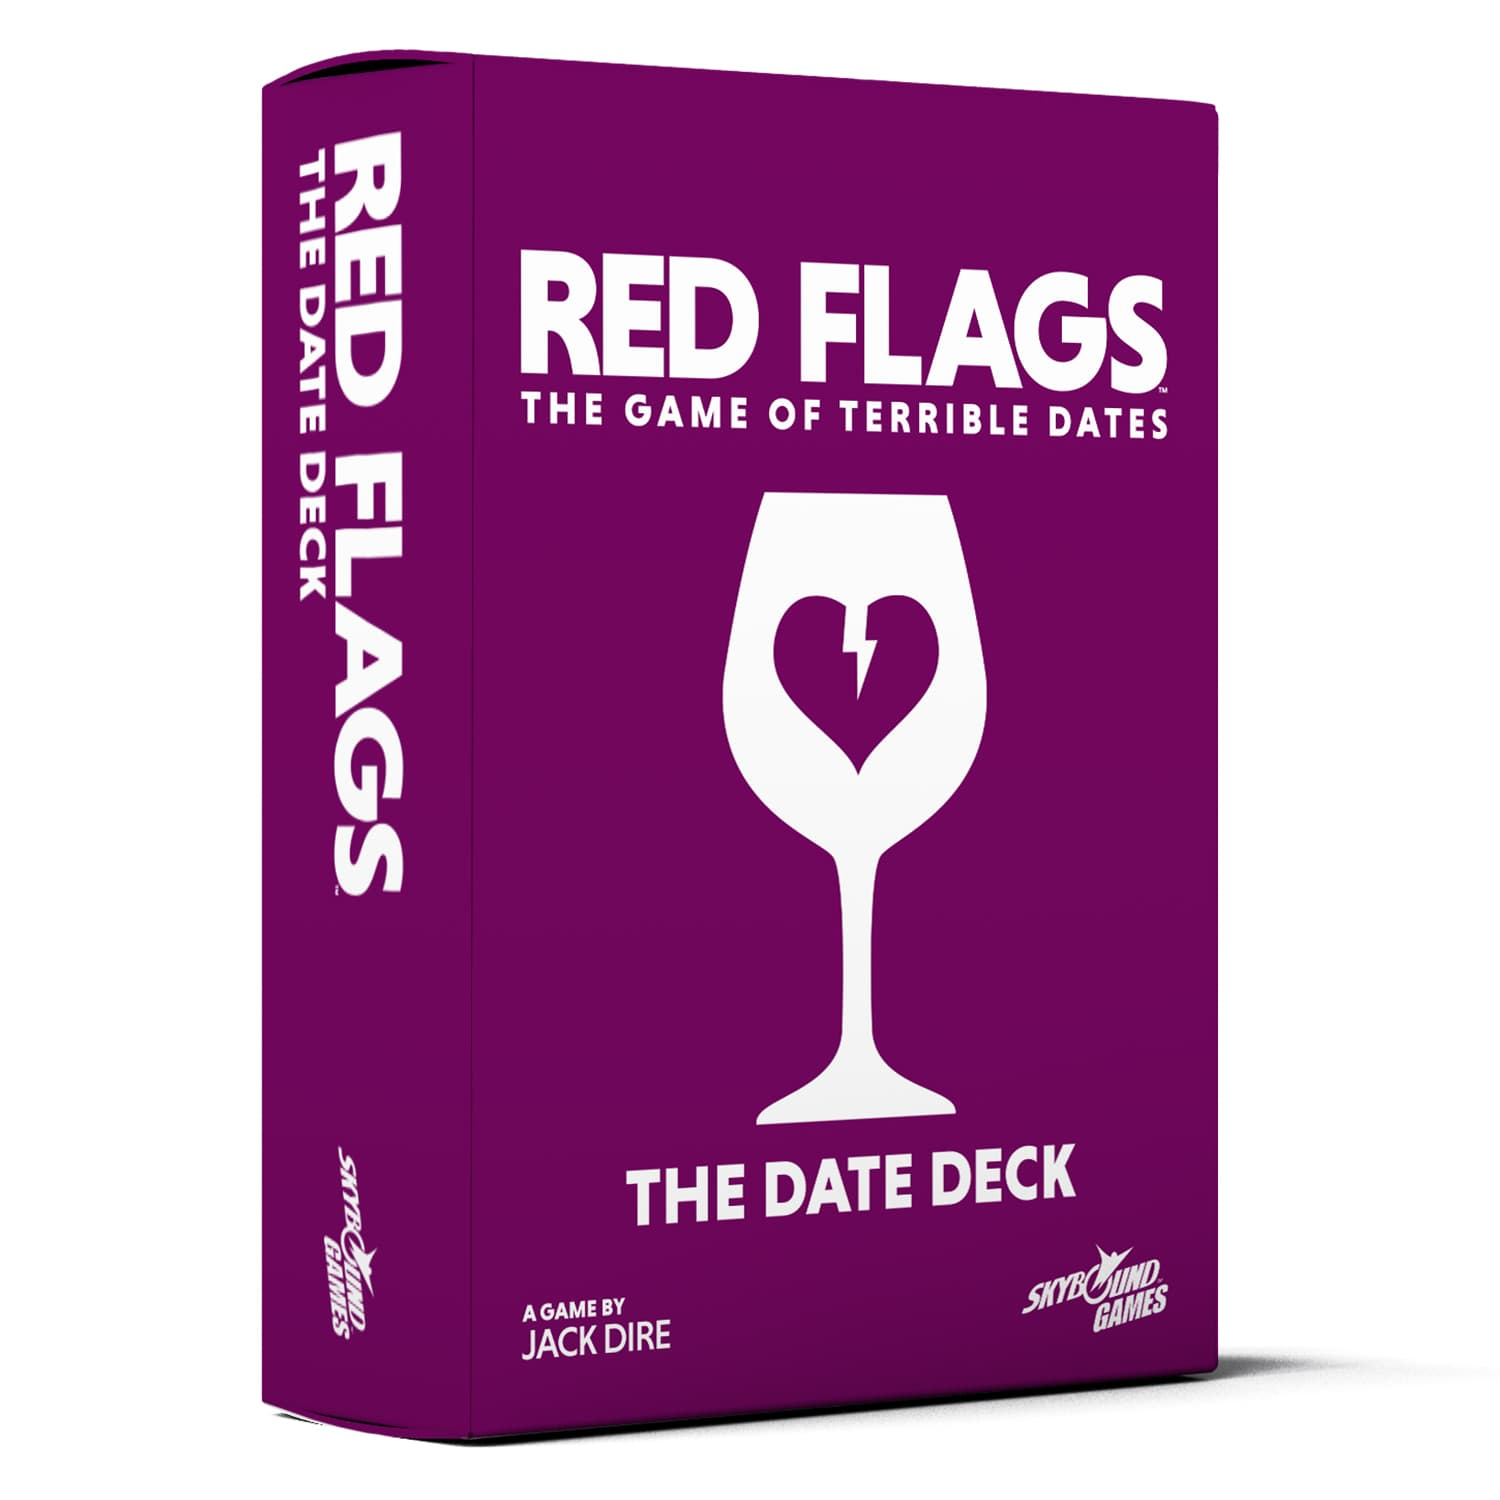 Red flags: the date deck expansion